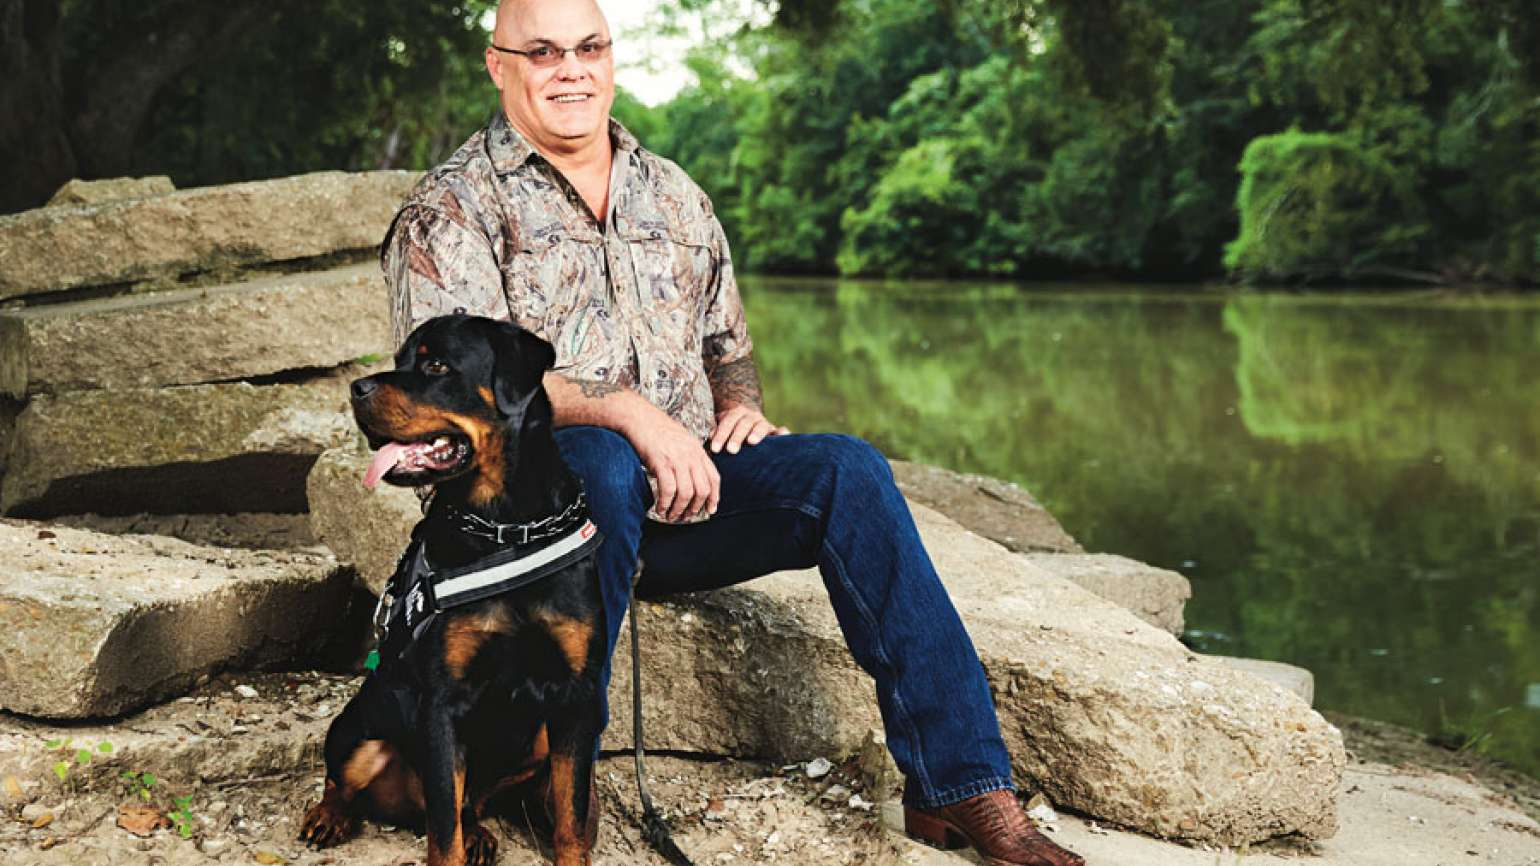 Wren and Beaux, a service dog specially trained for PTSD survivors